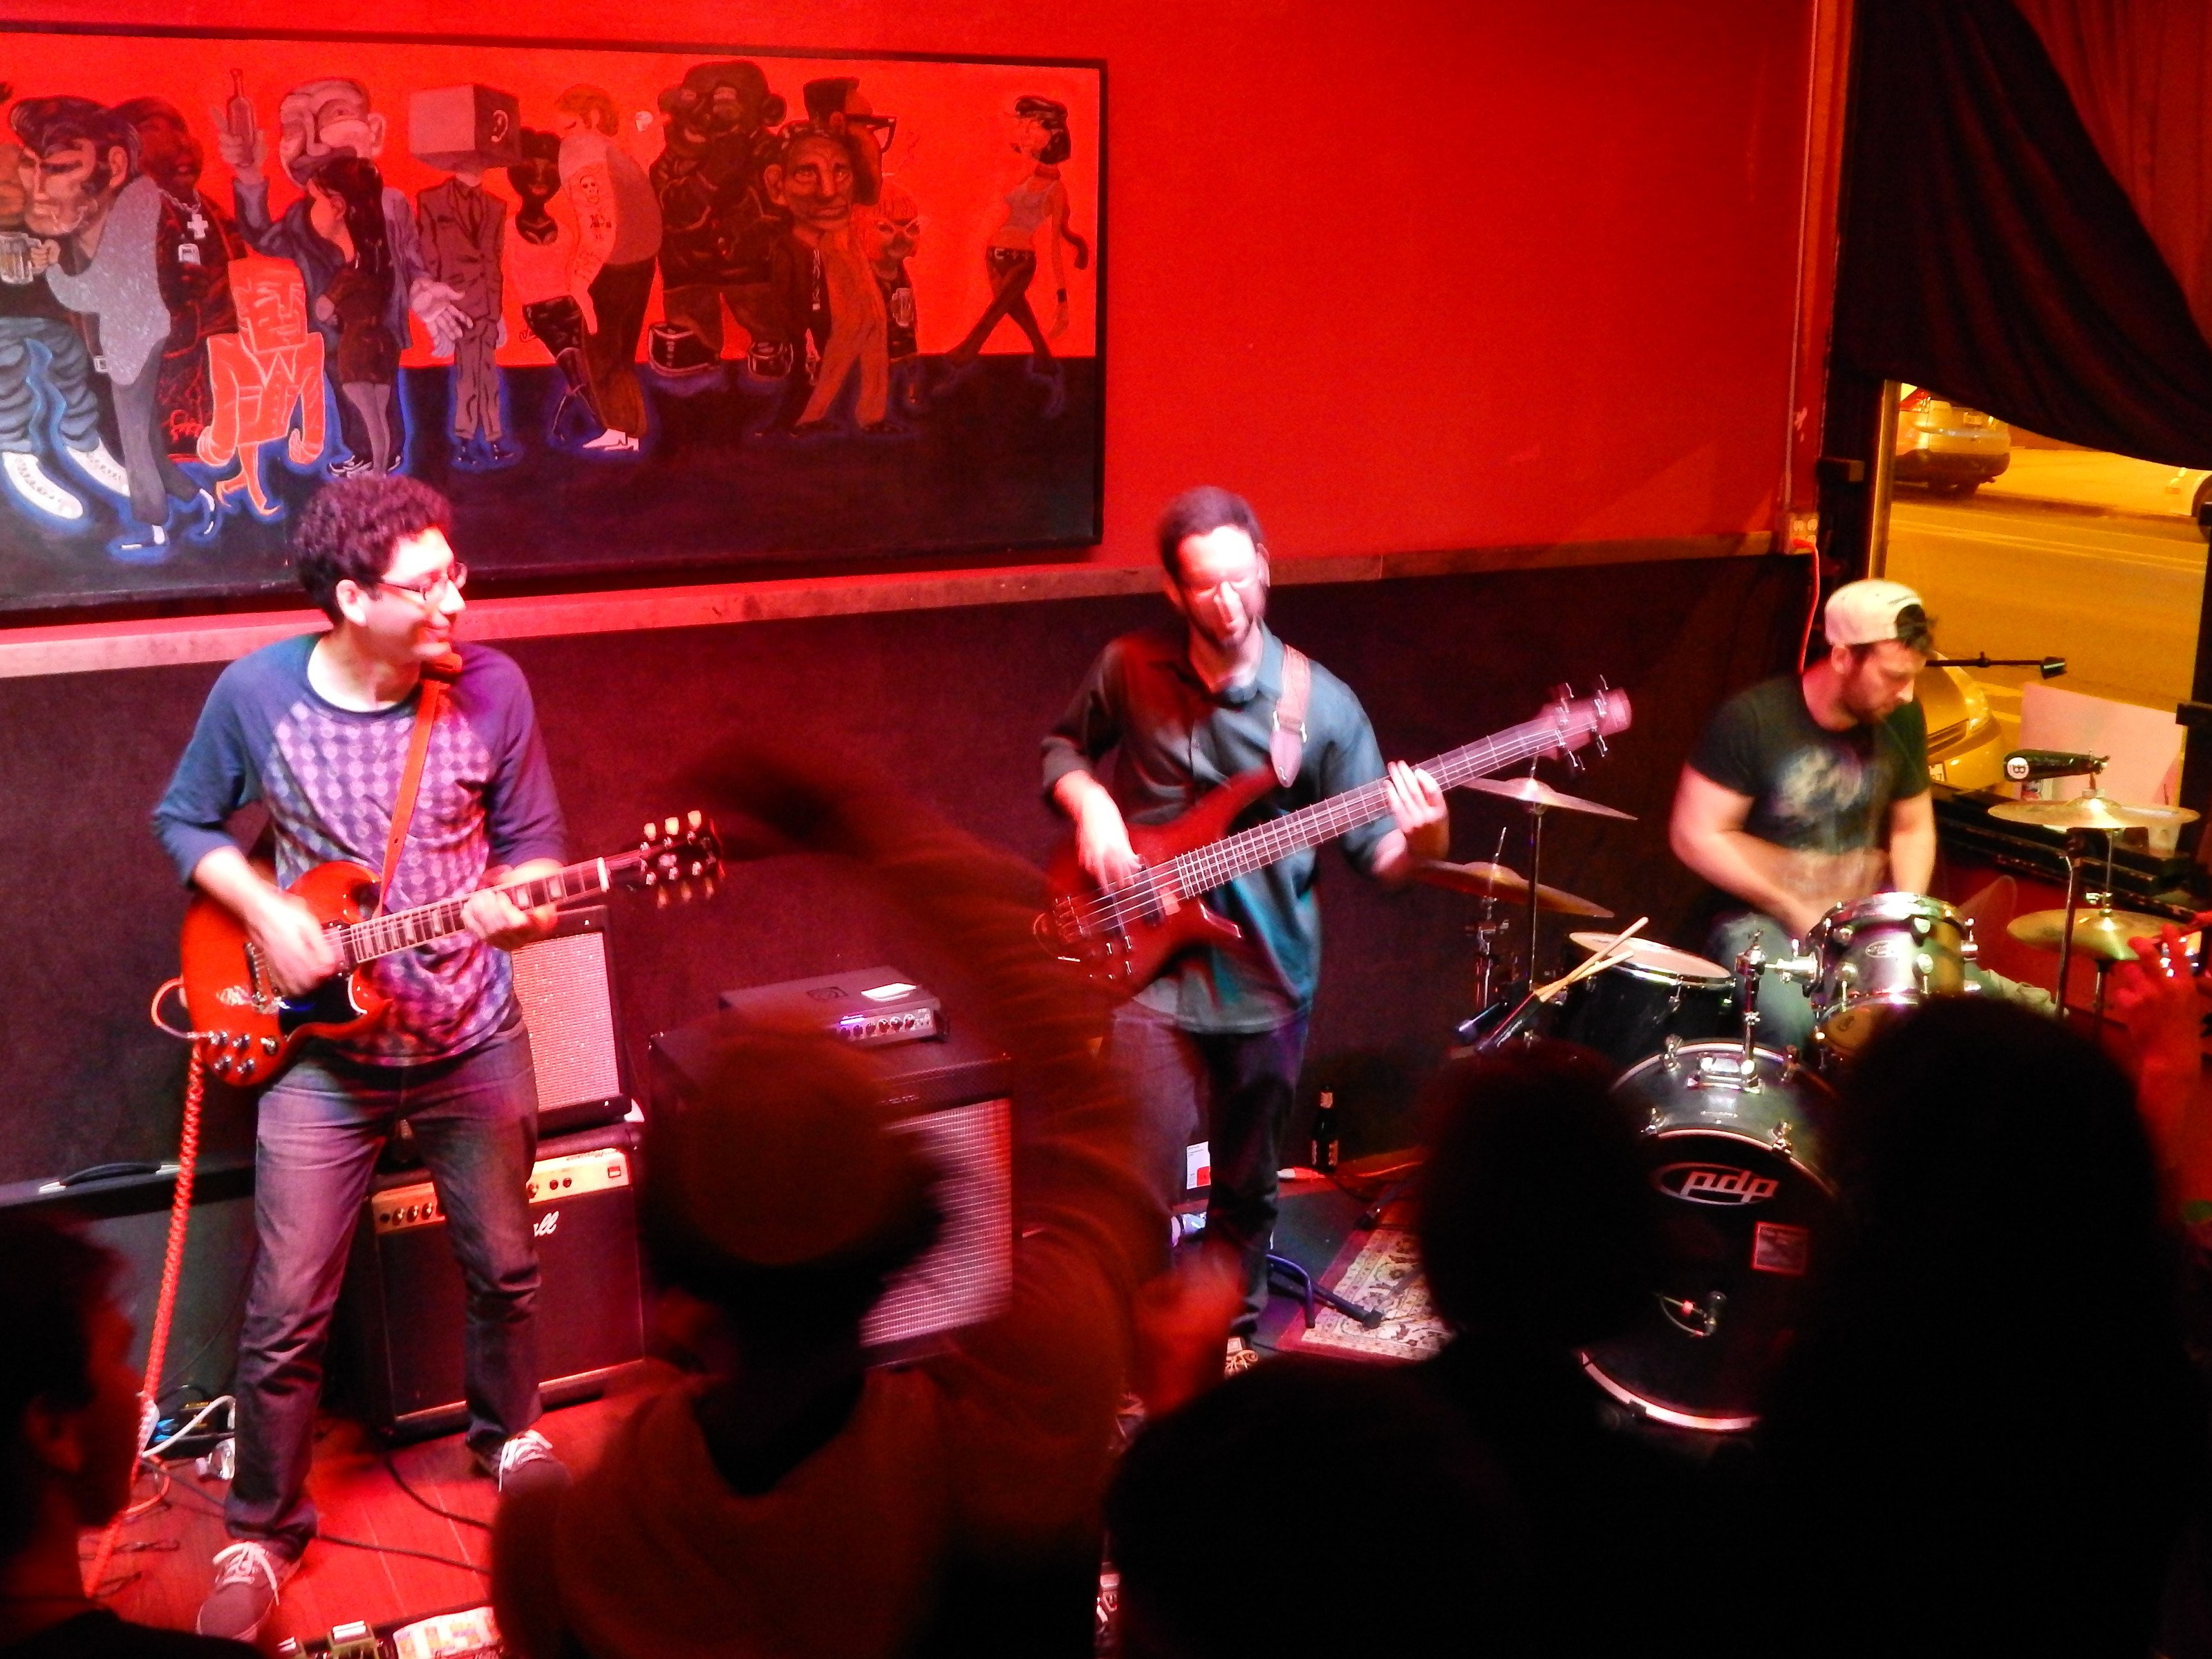 Live at Tonic Room, July 9th, 2015